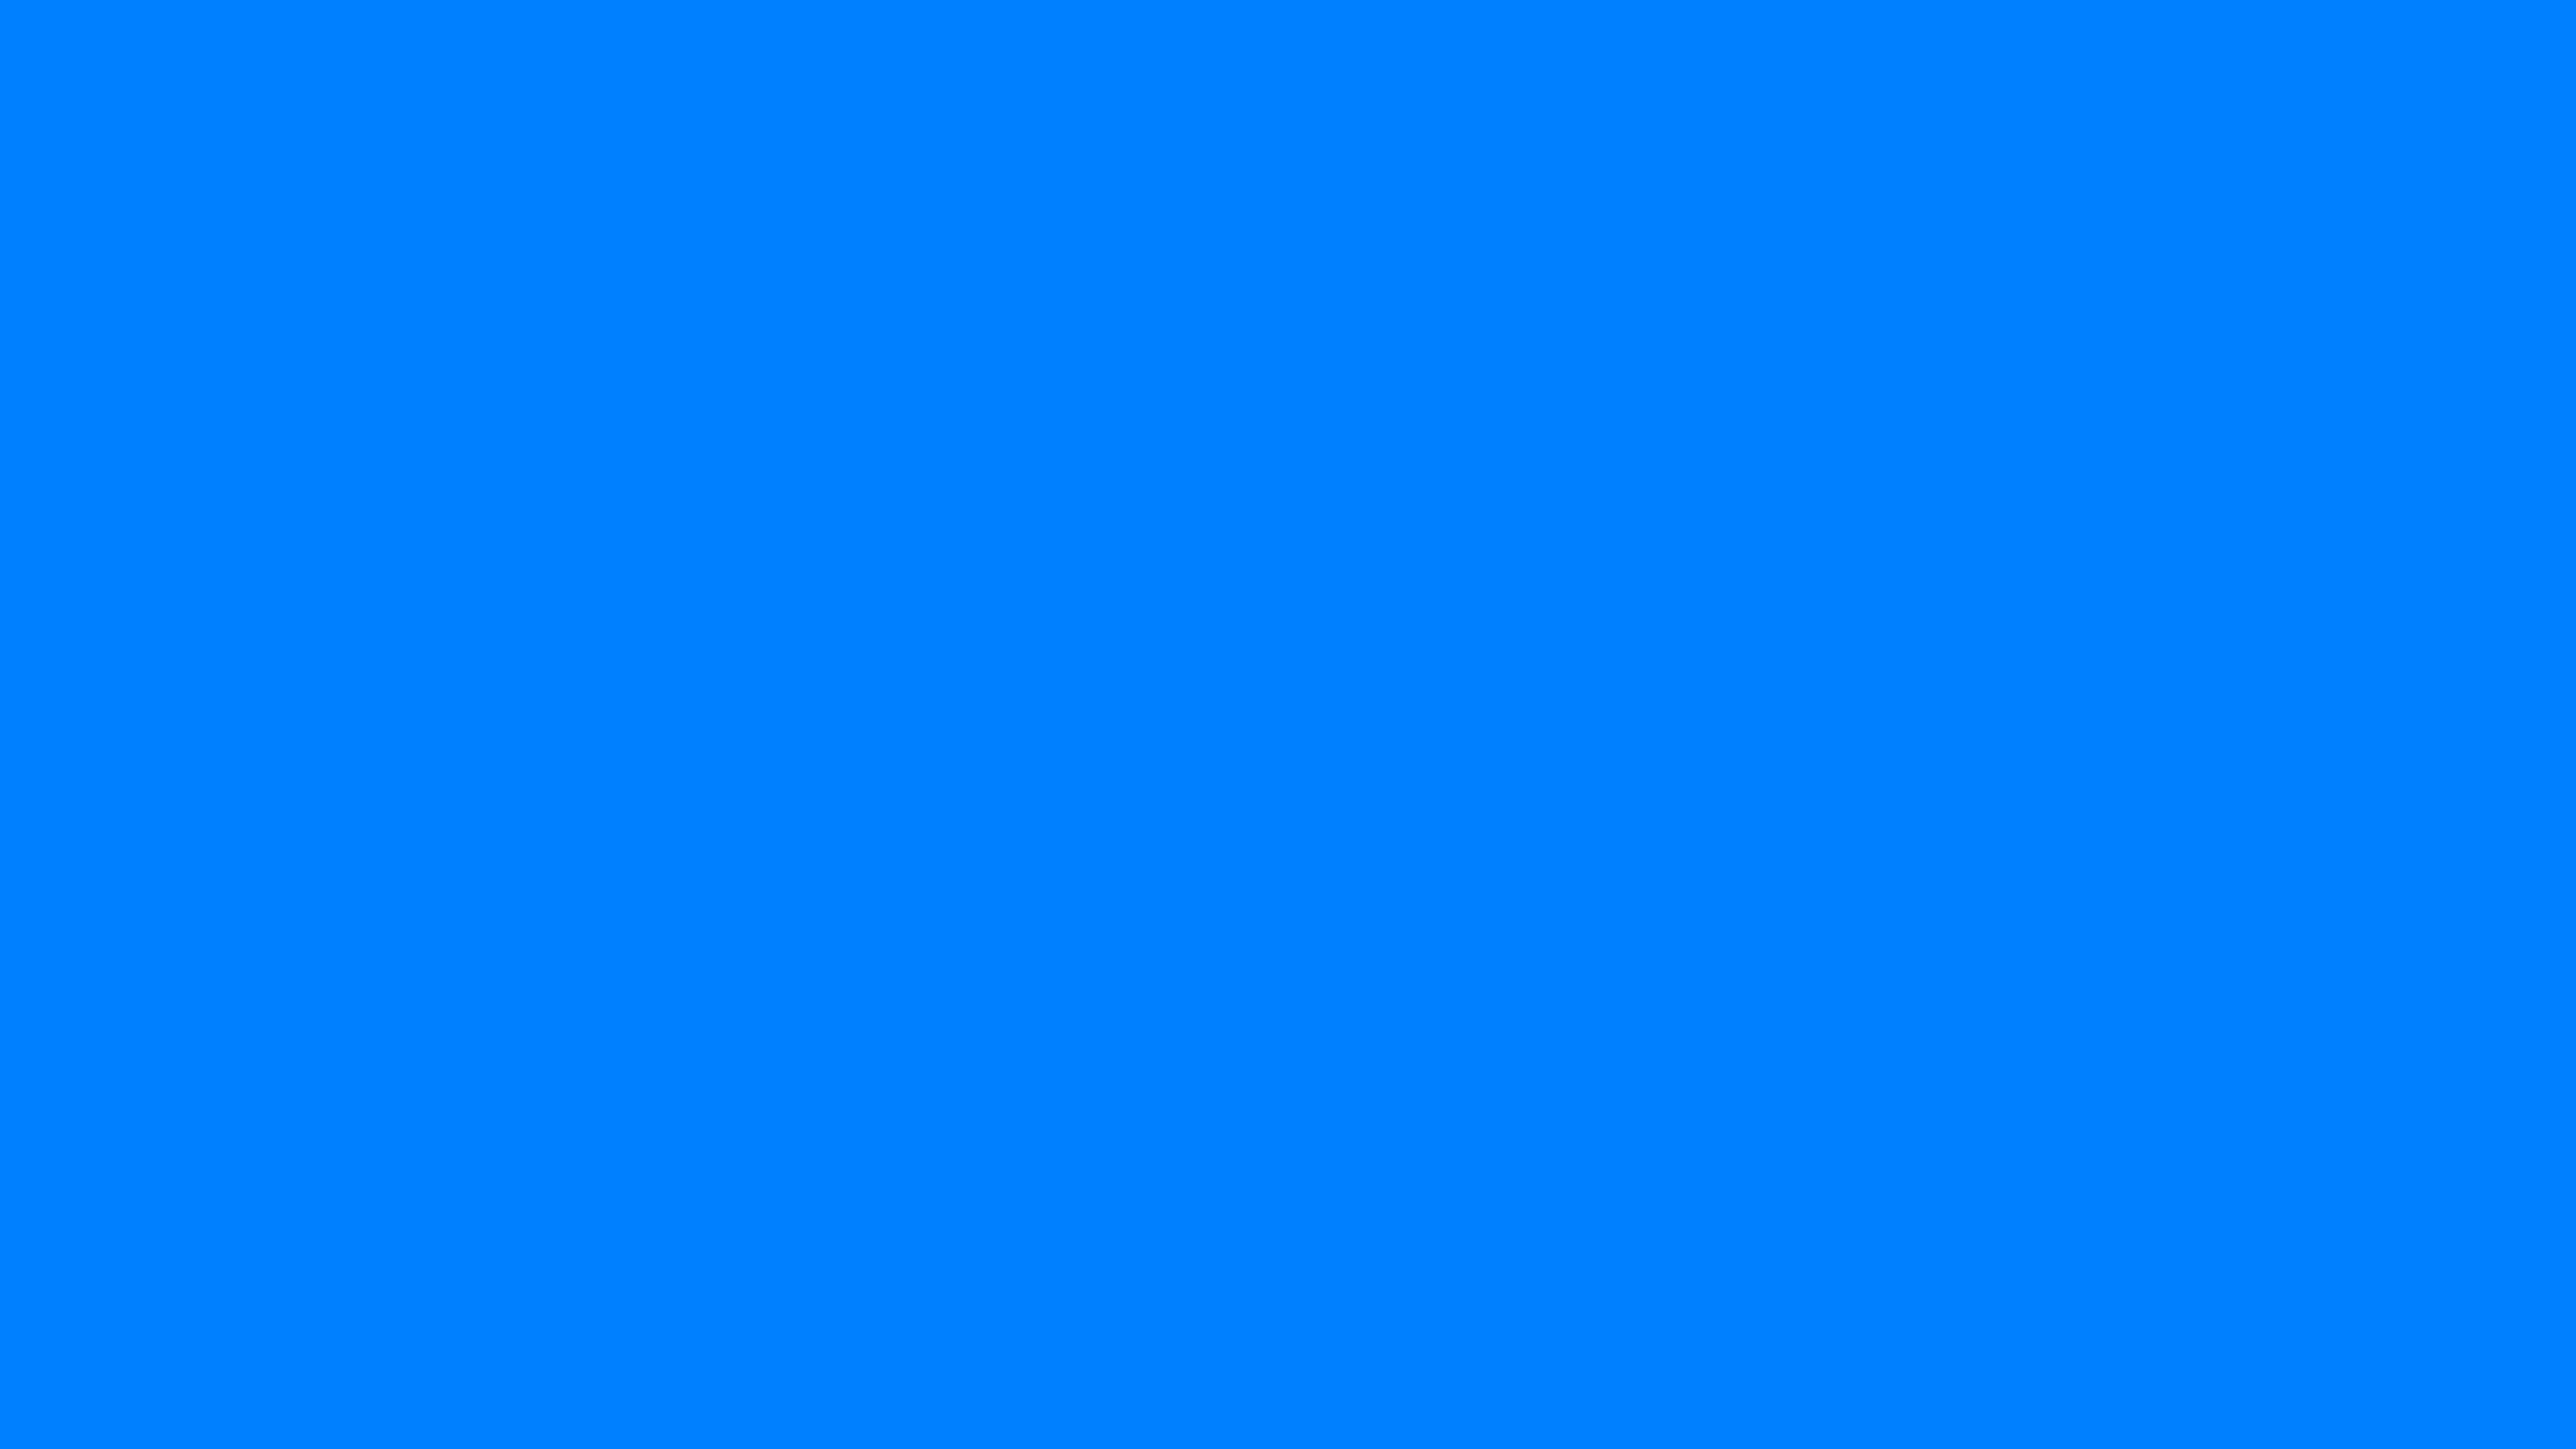 4096x2304 Azure Solid Color Background